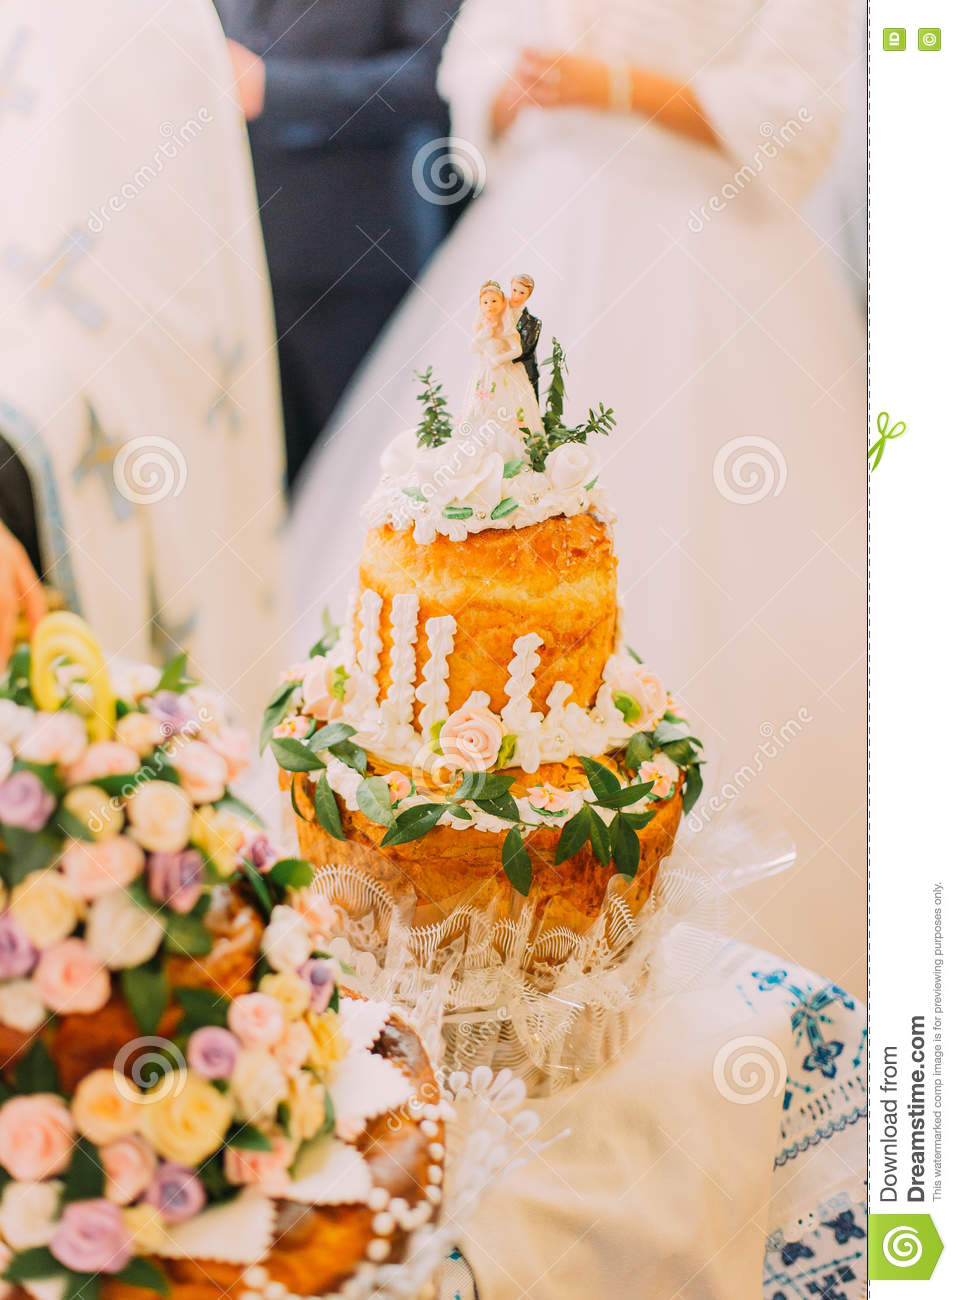 Beautifully Decorated Traditional Wedding Bread With Blurred Couple